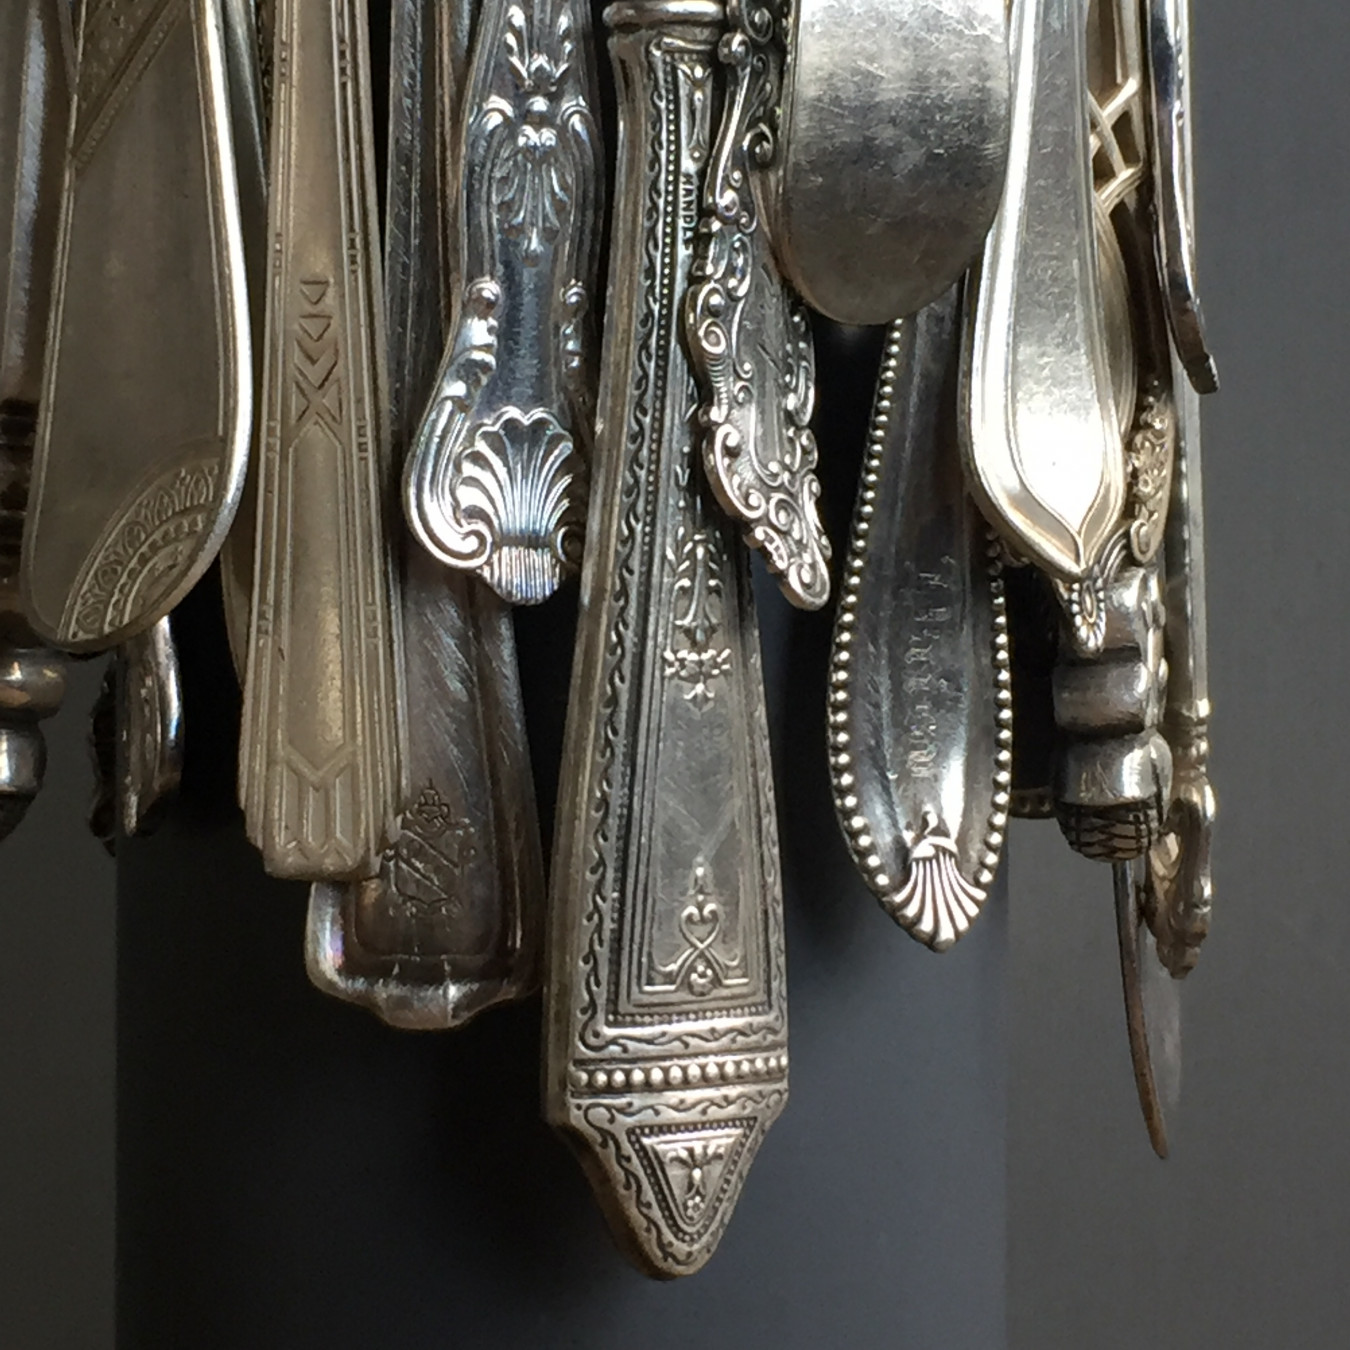 Detail image of the donated cutlery which has been bought together to create a fringed 'platform'.